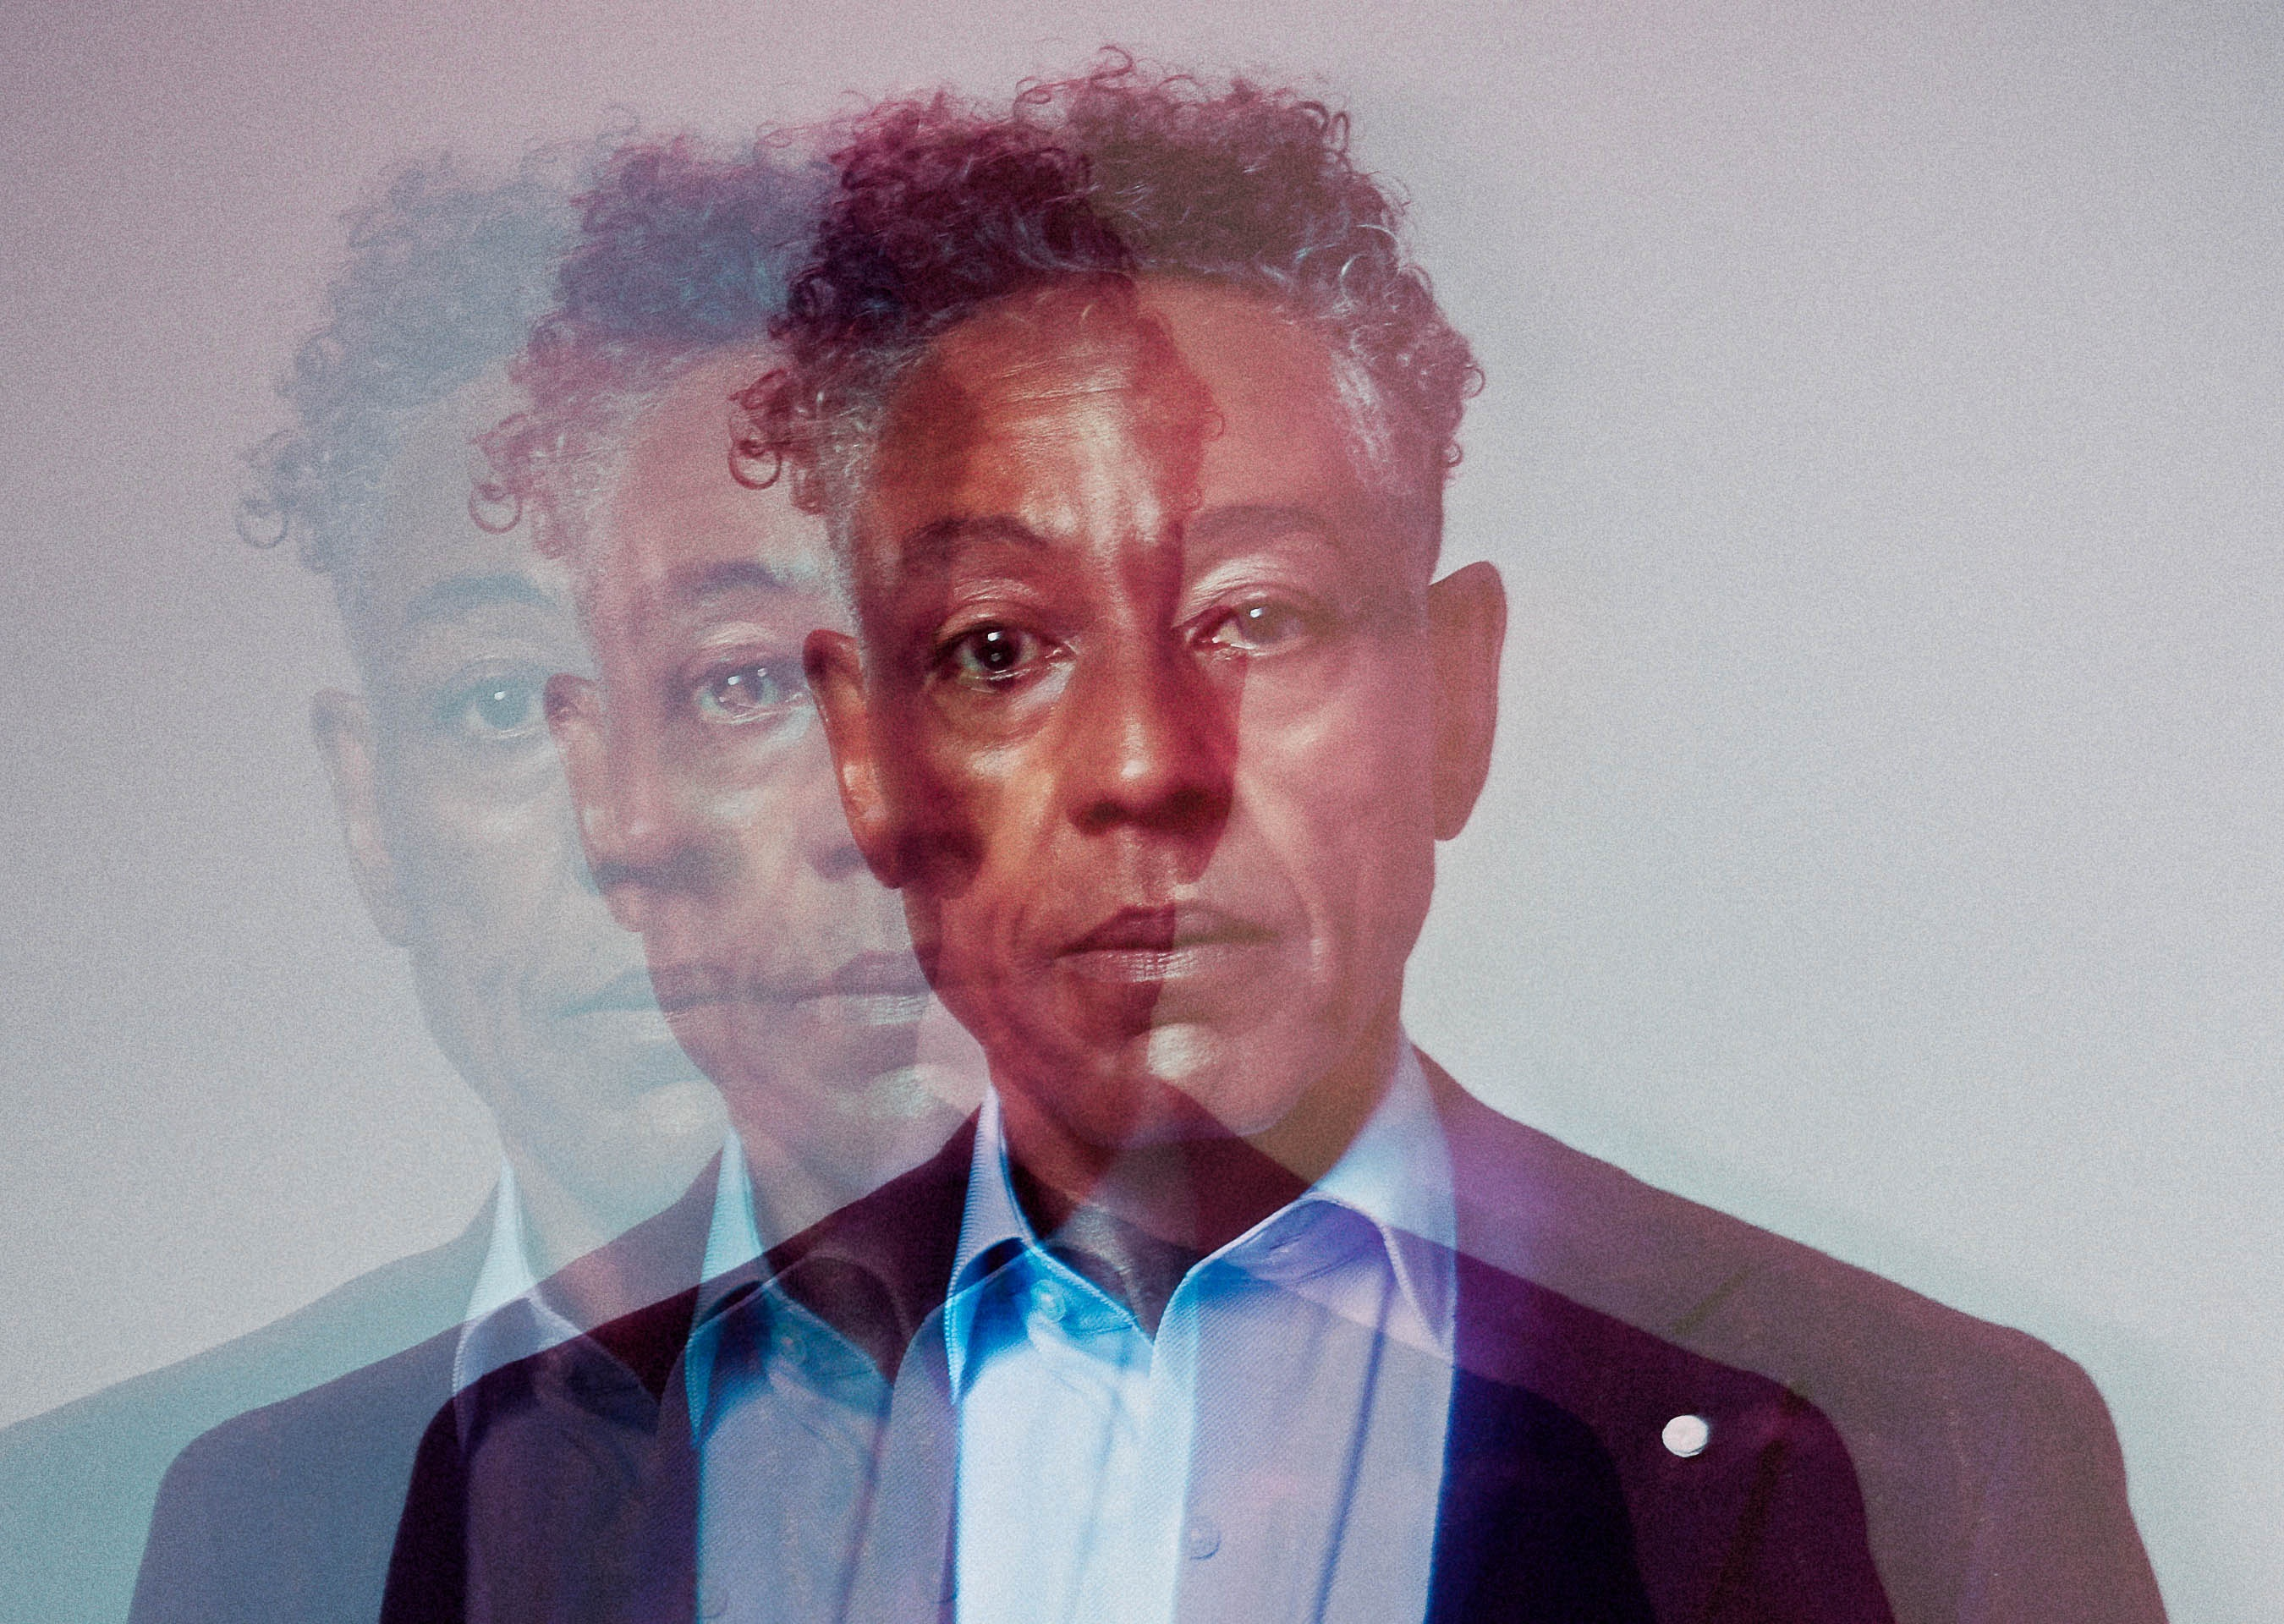 Piecing Together Giancarlo Esposito